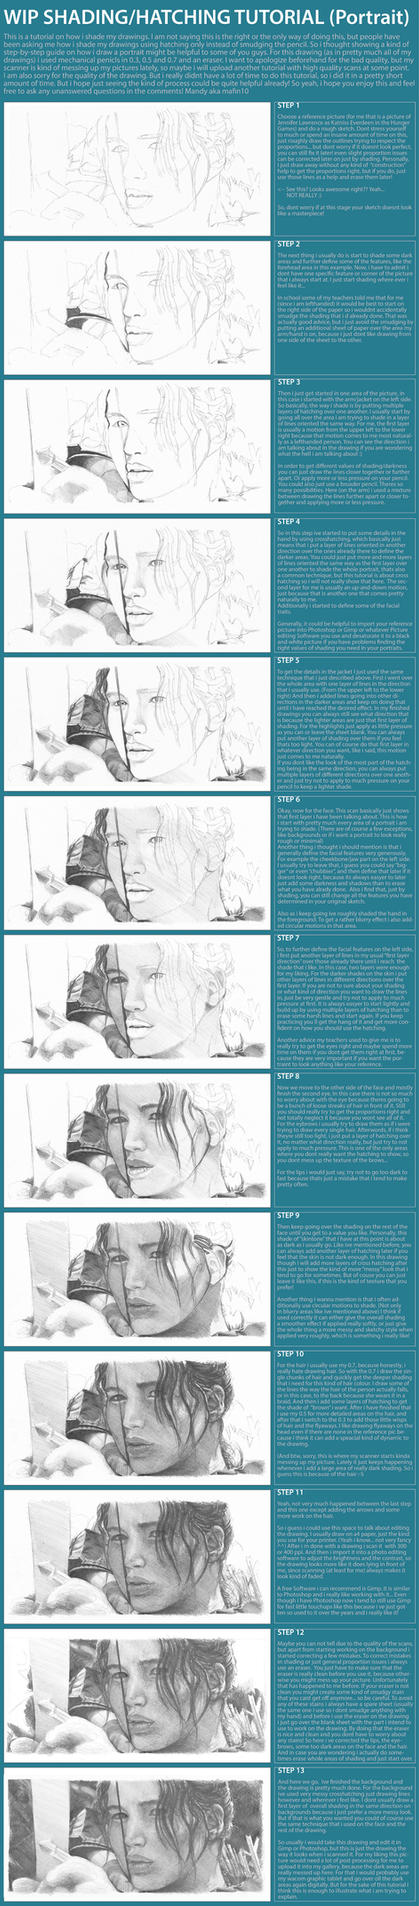 shading/crosshatching tutorial (portrait katniss) by Mafin10